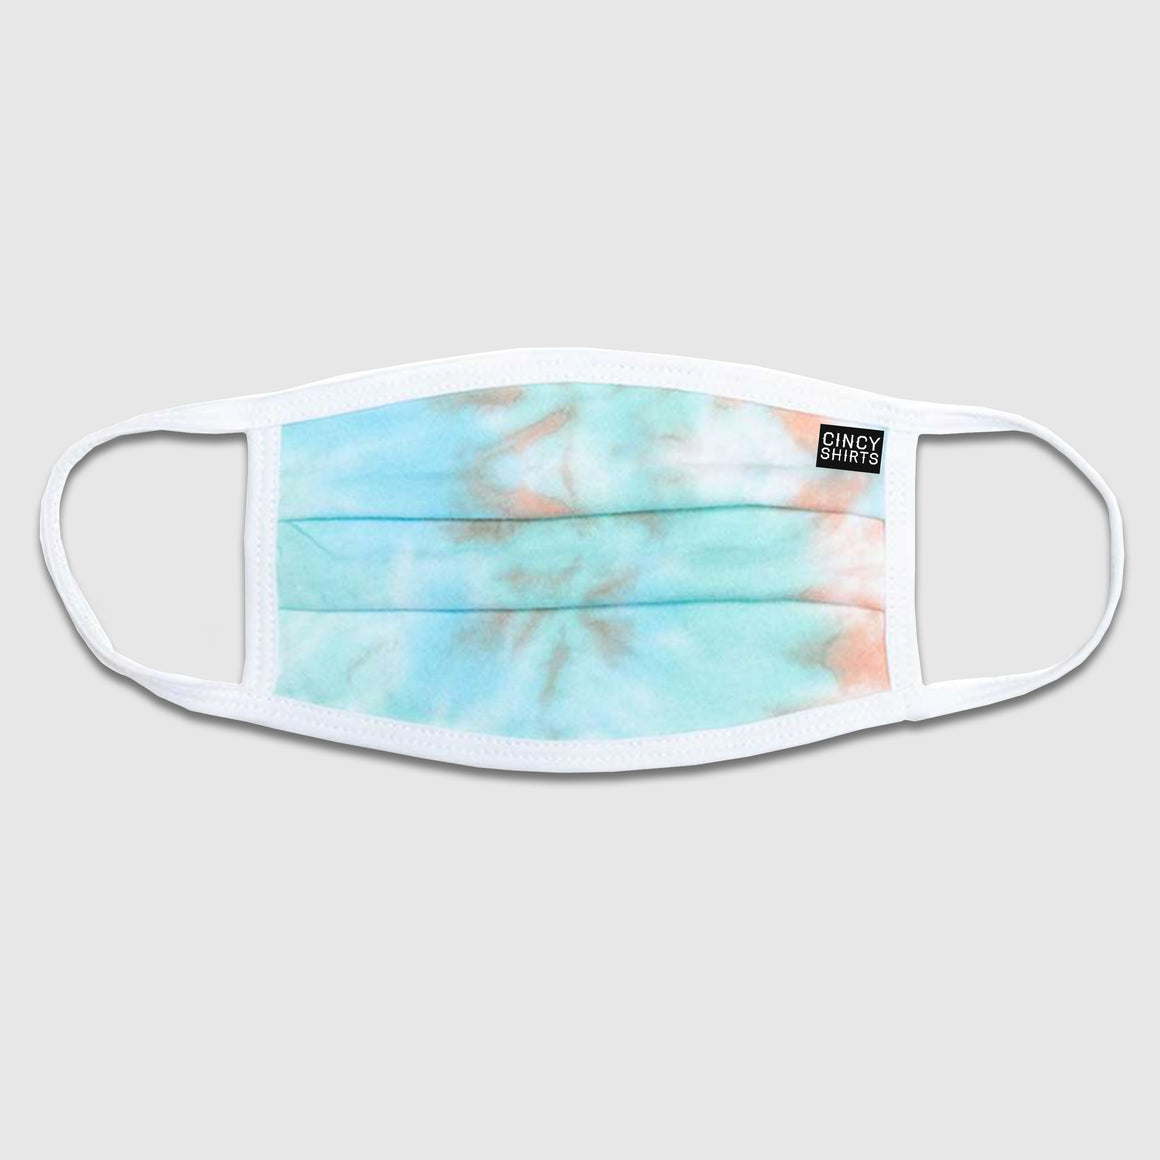 Cincy Shirts Logo Tie-Dye Peach/Teal Face Mask - Cincy Shirts